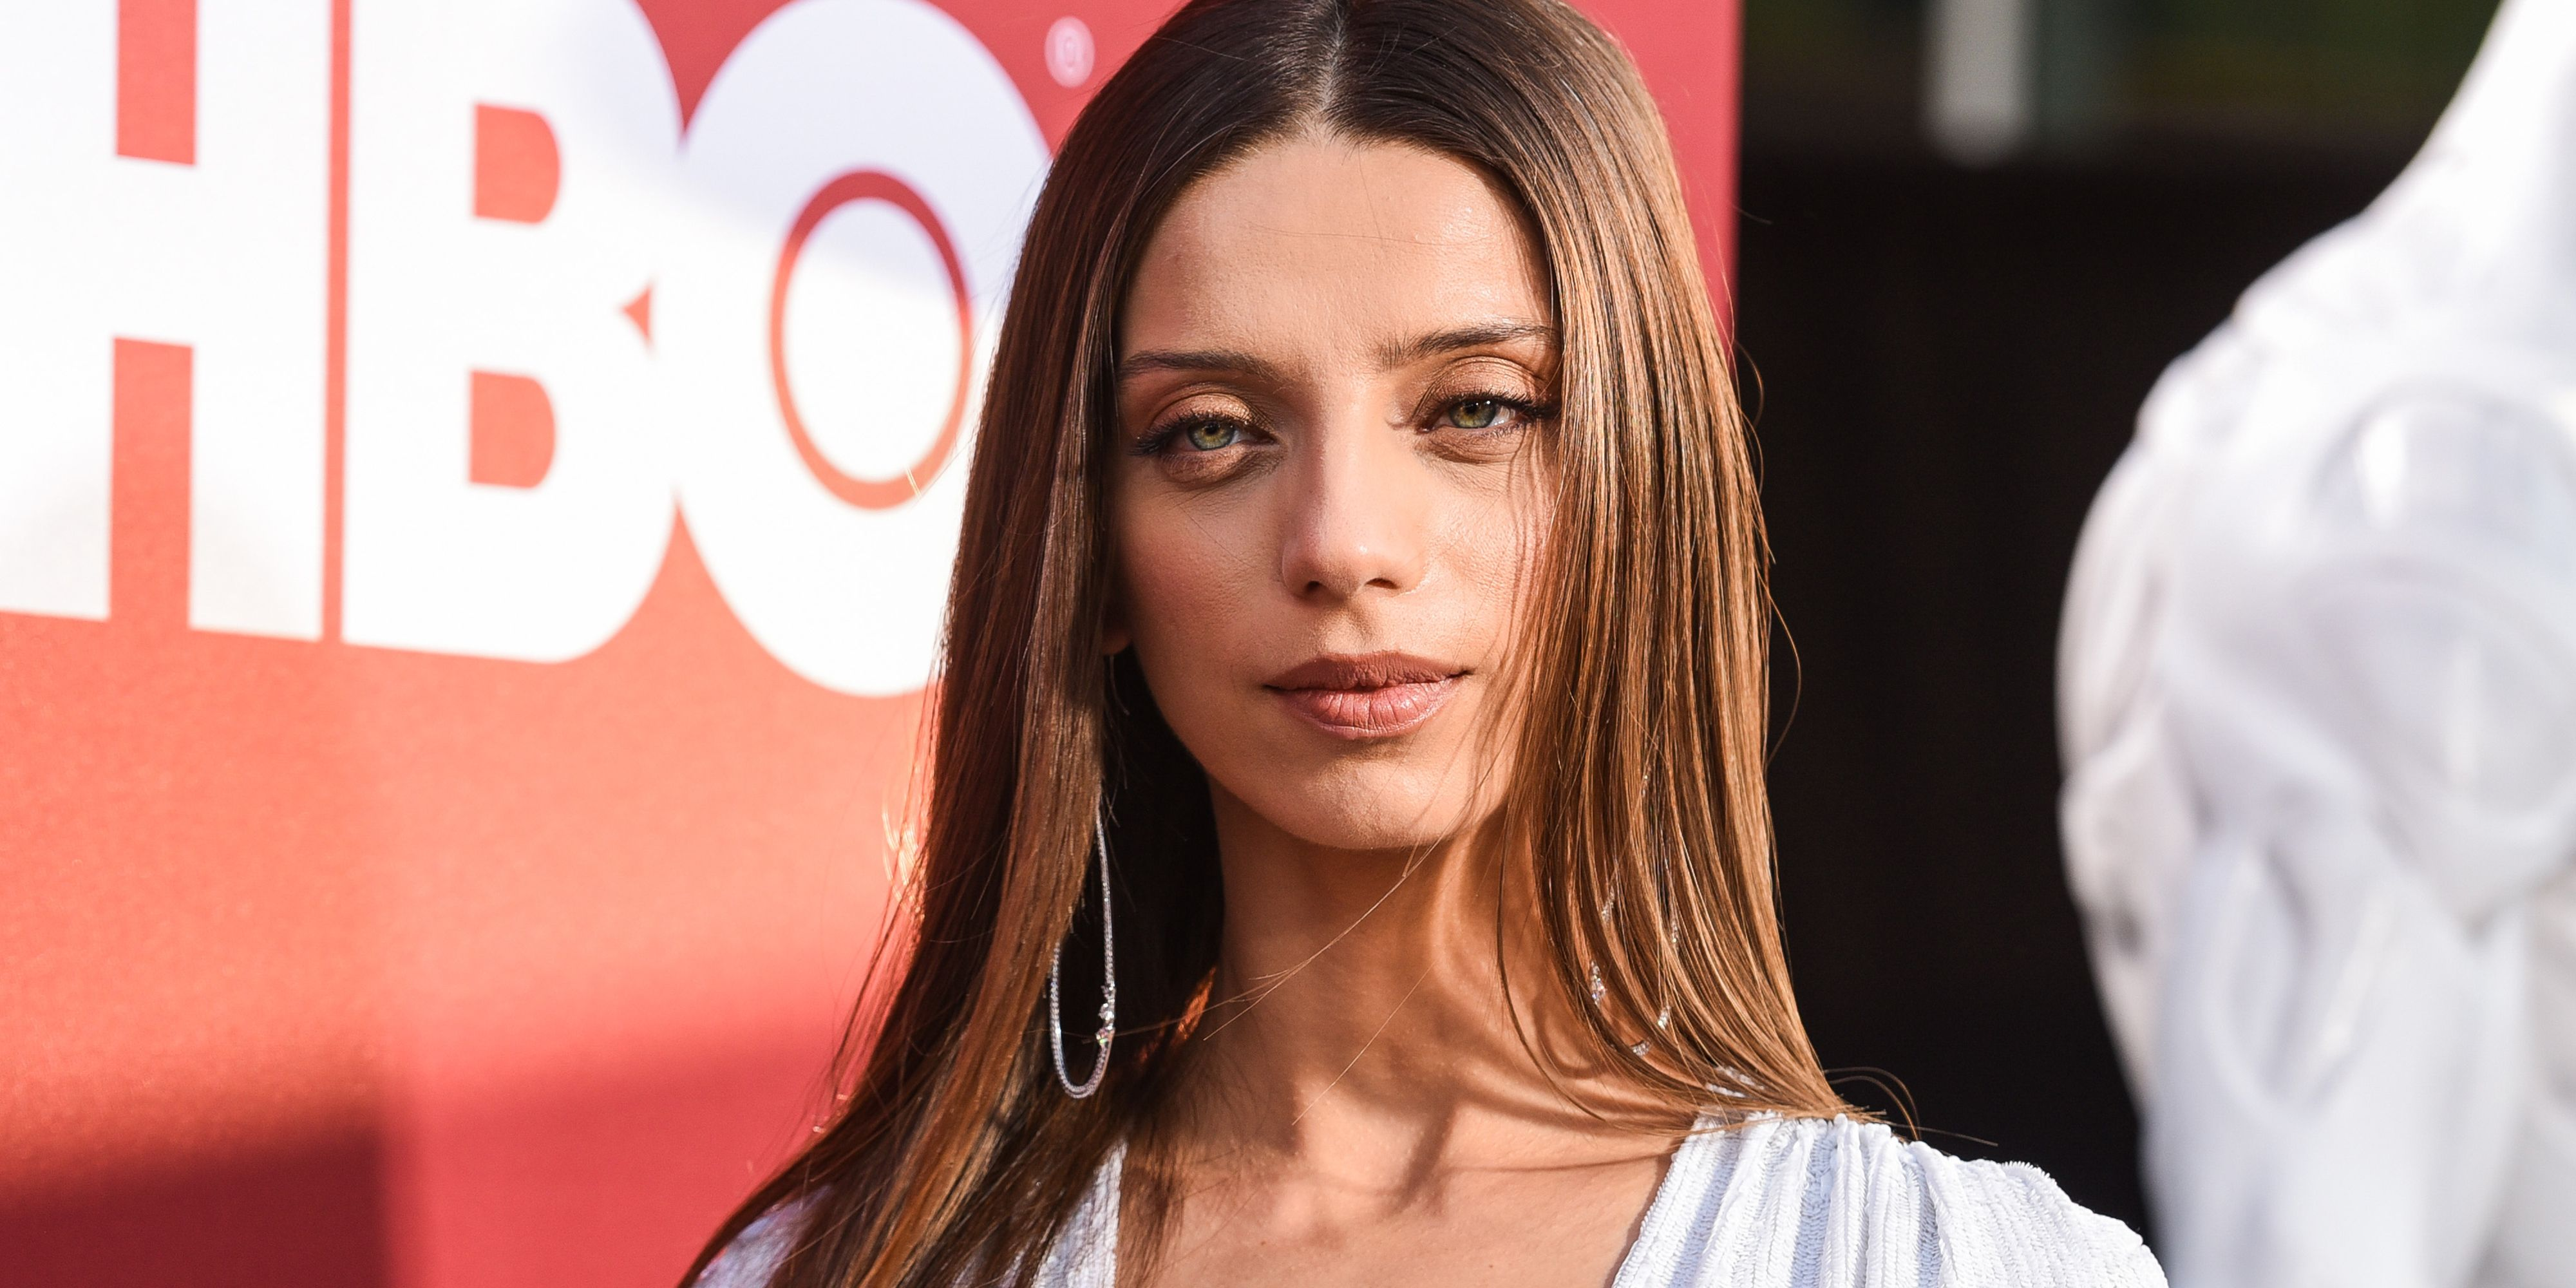 Paparazzi Pics Angela Sarafyan naked photo 2017